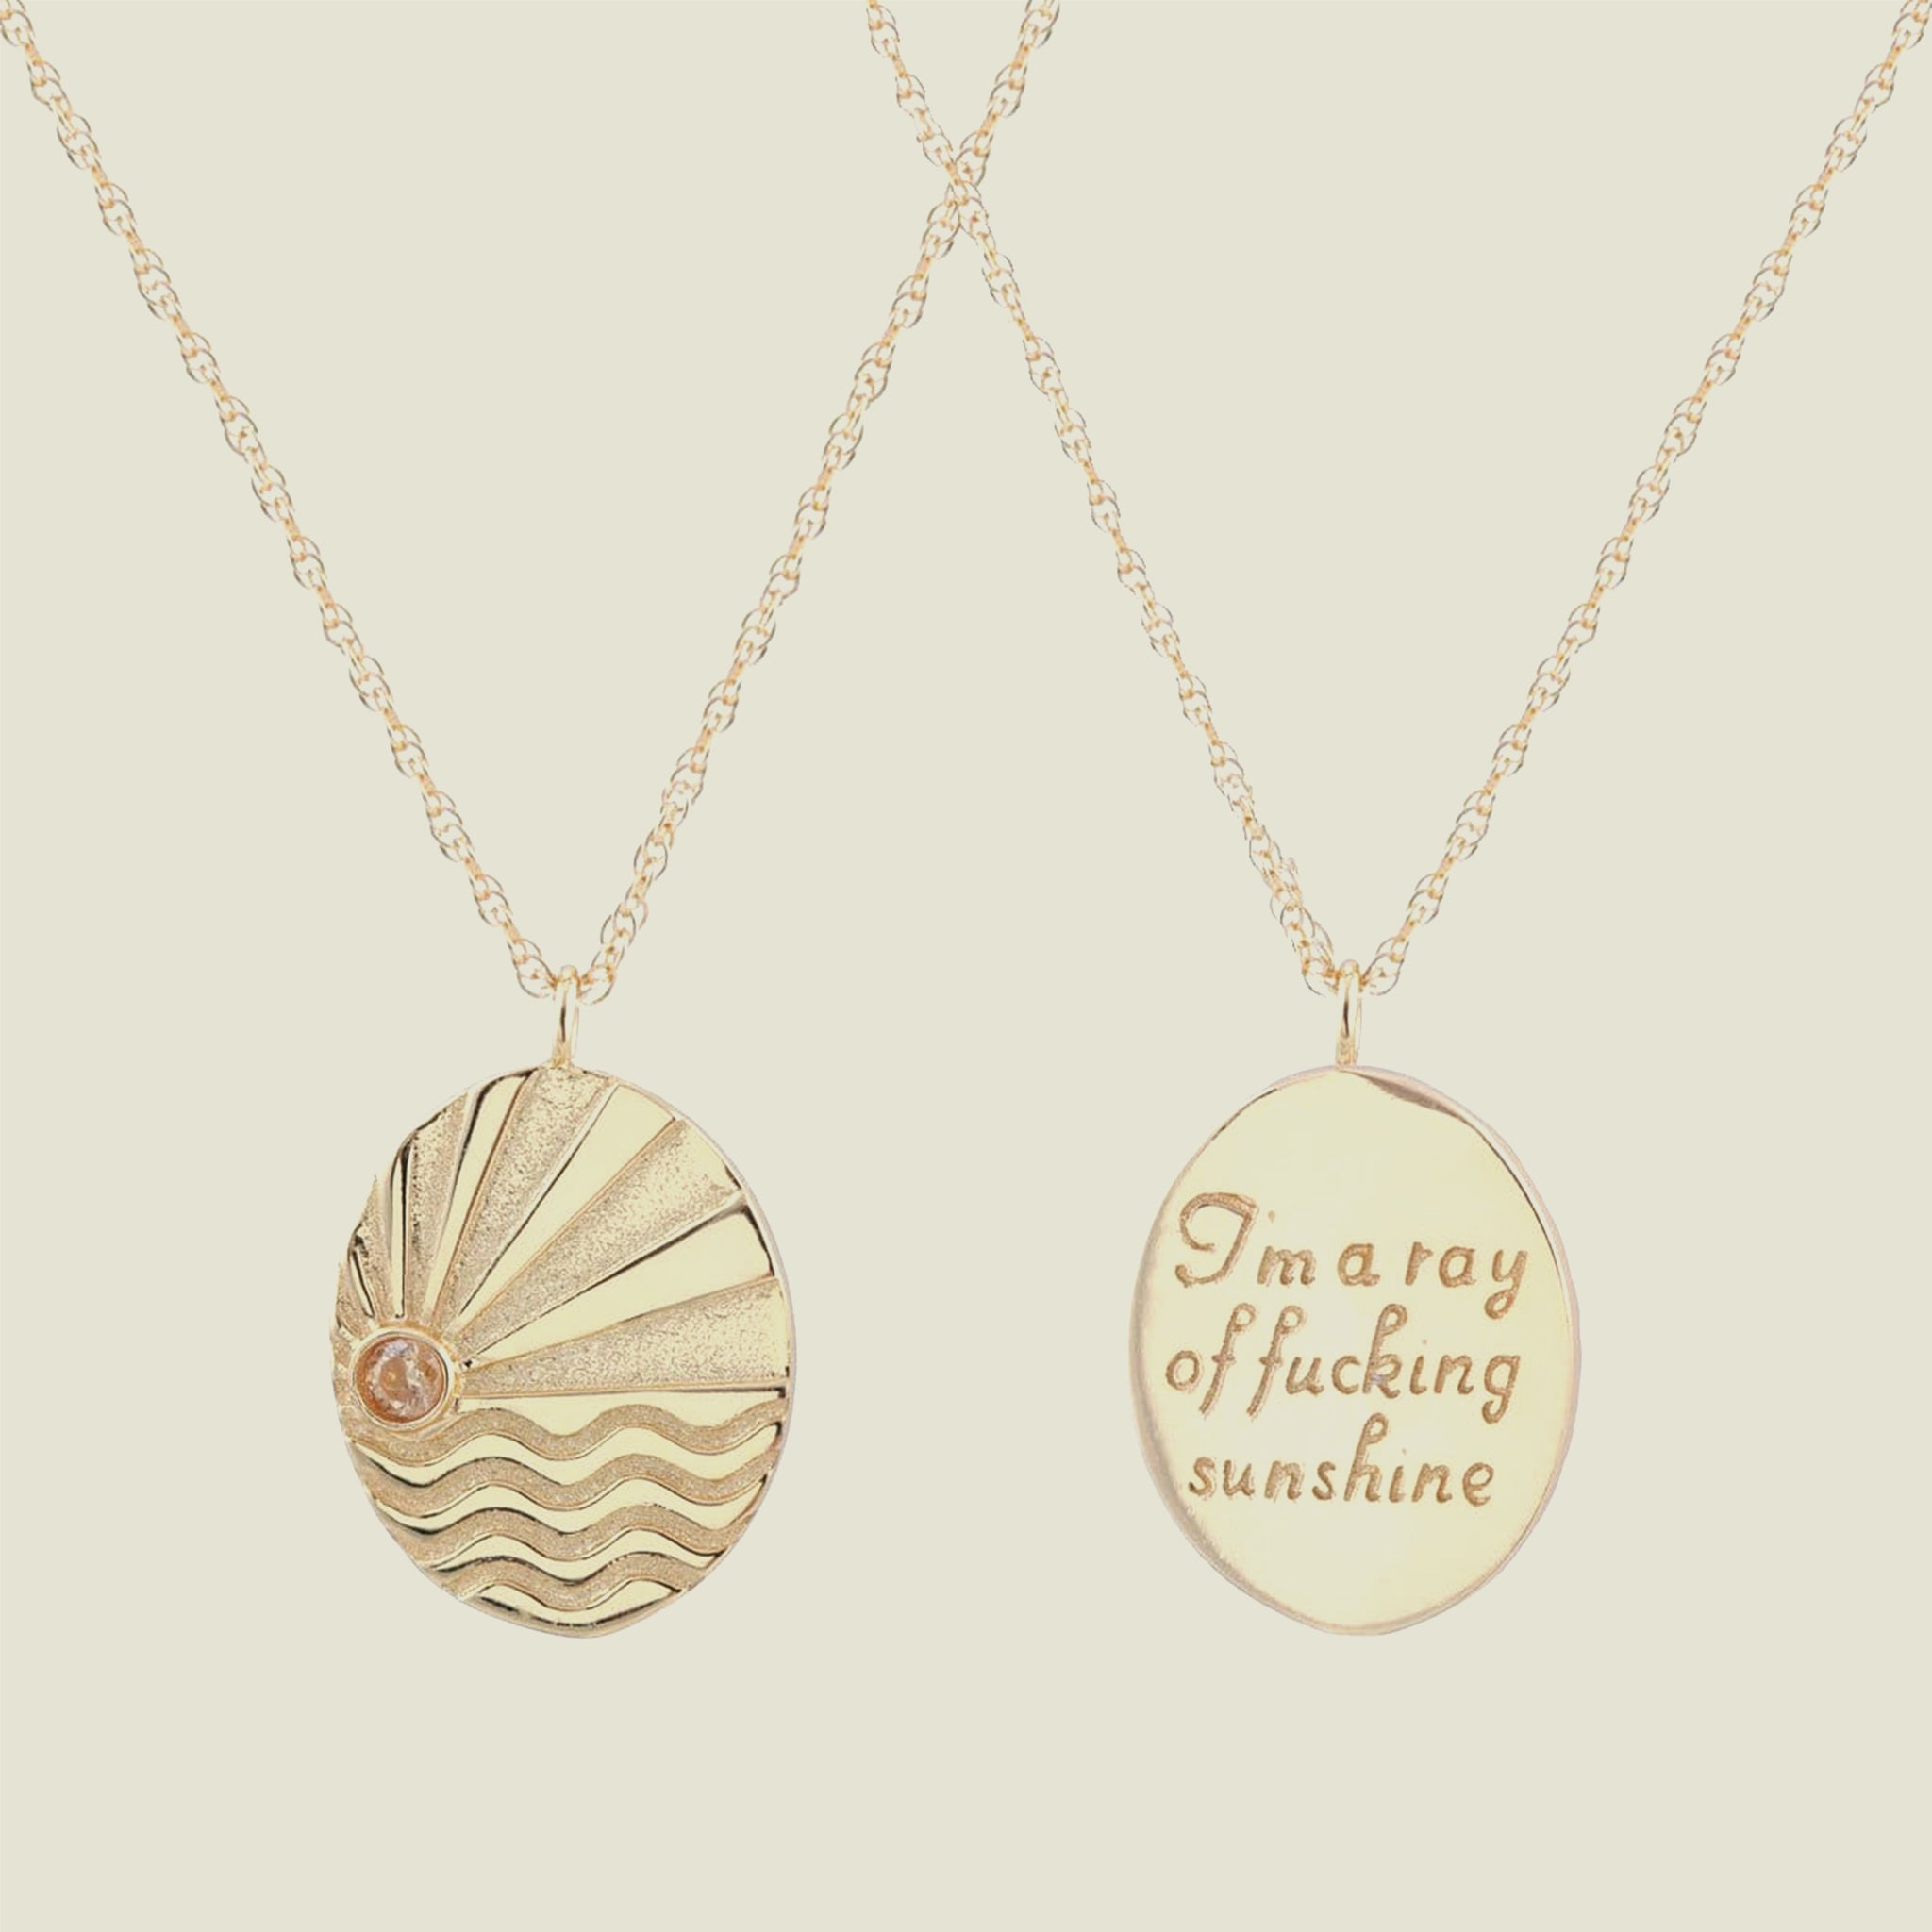 Ray of F-ing Sunshine Long Chain Necklace - Blackbird General Store